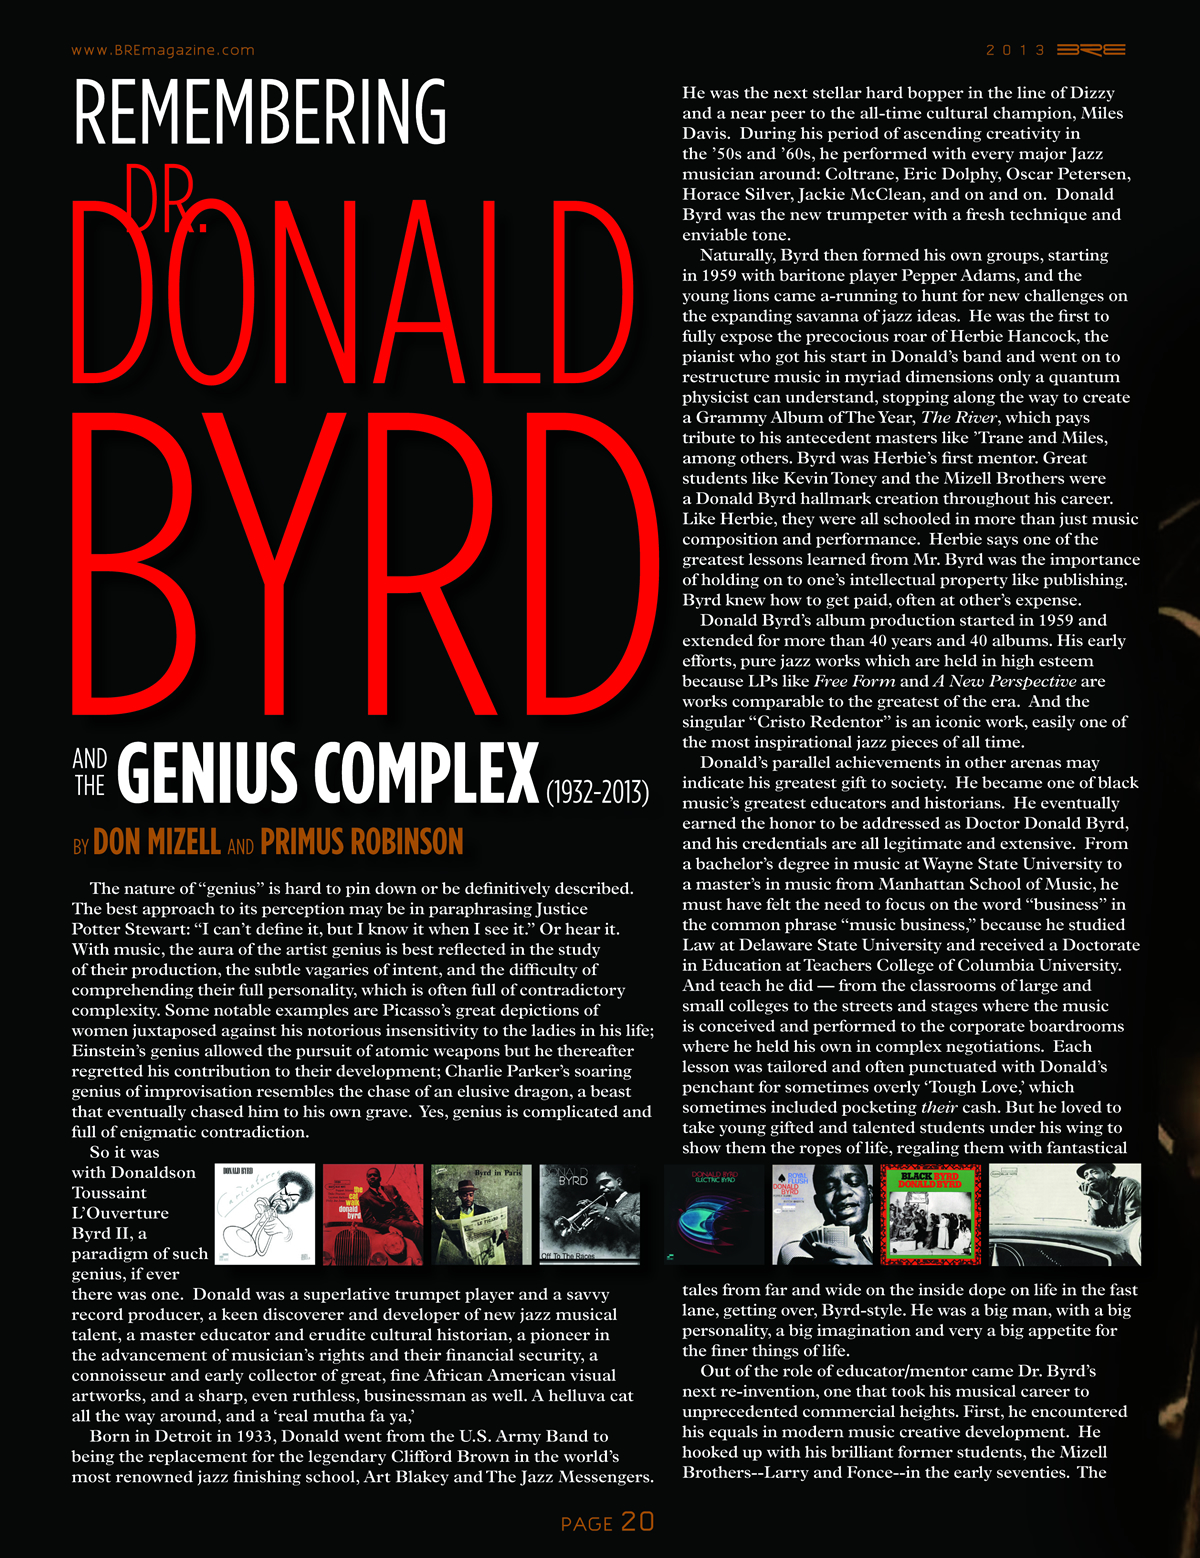 Donald_Byrd_article-page1